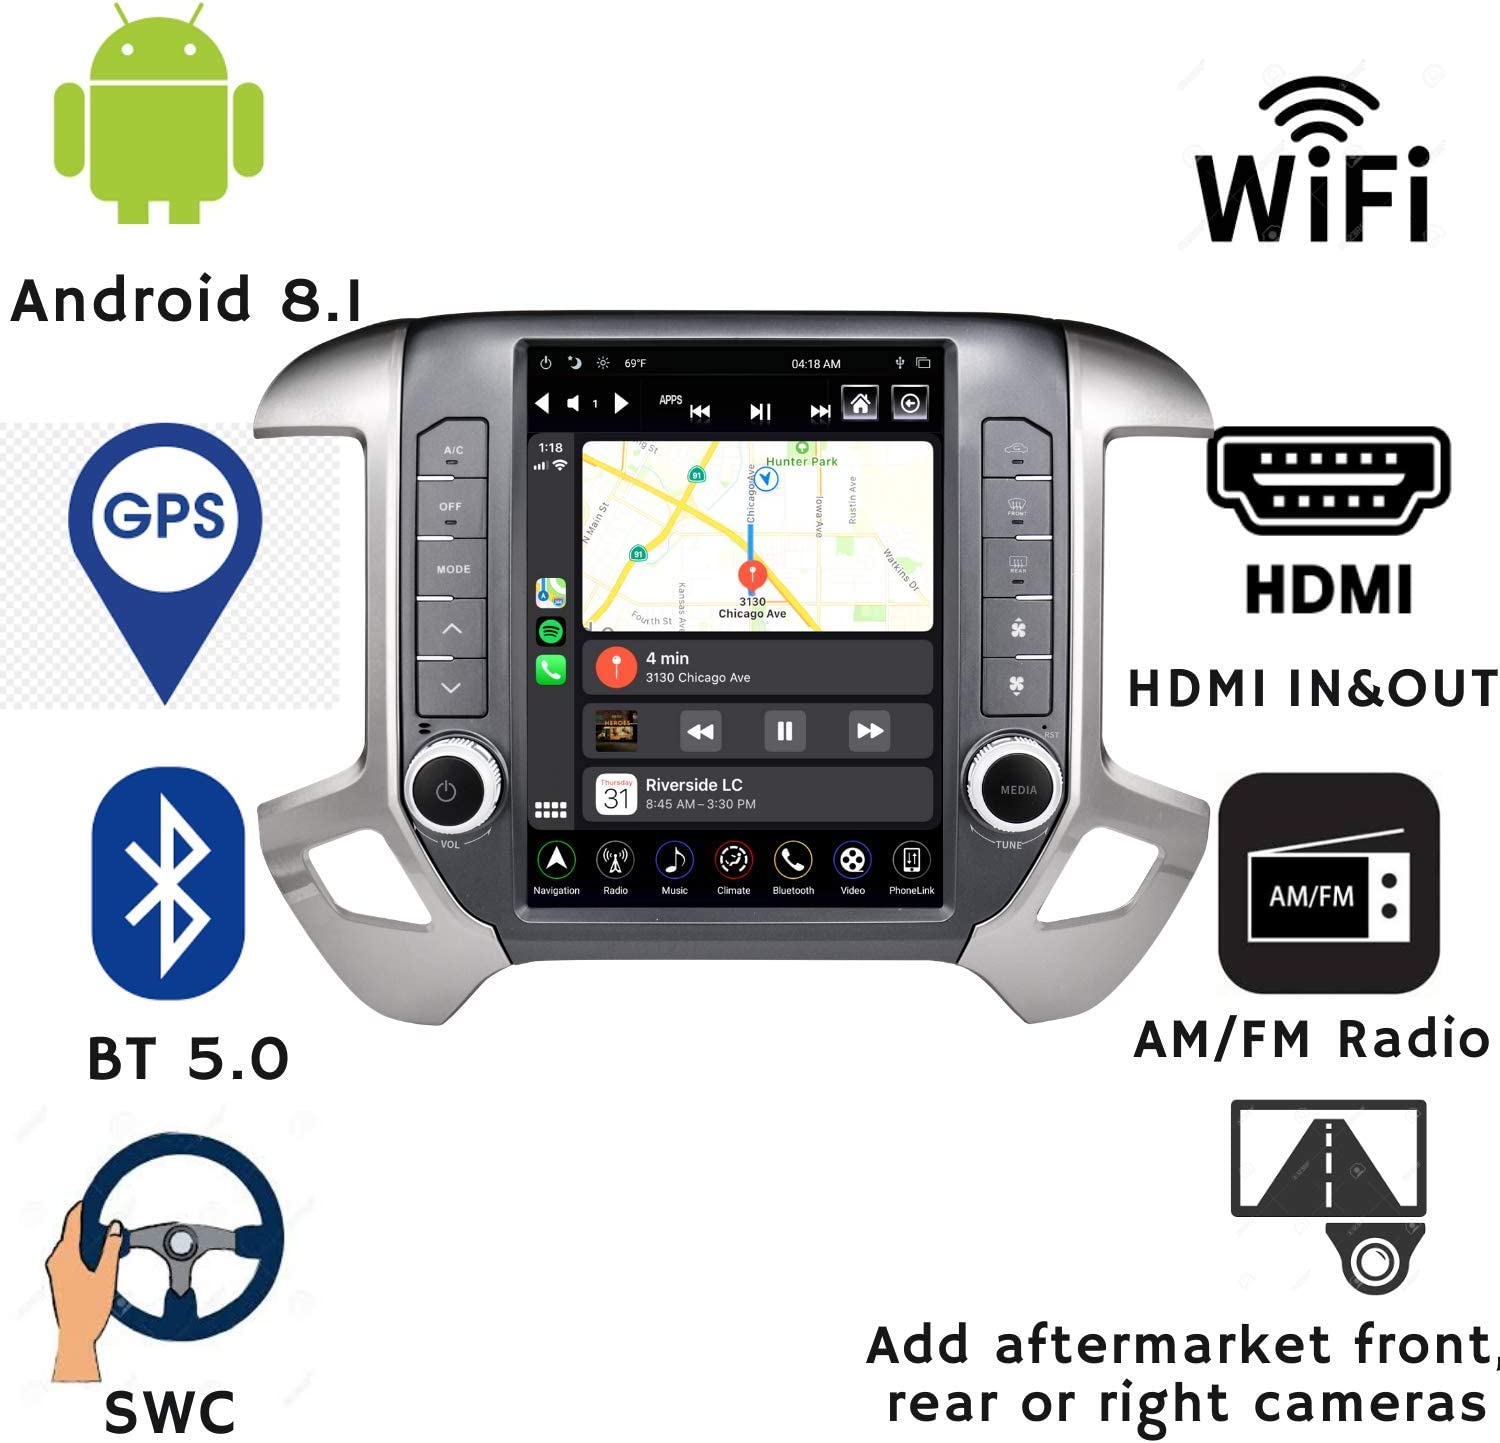 LINKSWELL GEN IV Android Radio Replacement Head Unit Fits for Chevrolet 2014 to 2019 Silverado and GMC 2014 to 2019 Sierra Car Stereo Navigation 12.1 Inch Touchscreen with WiFi//BT 4GB+32GB UNIMEAUTO